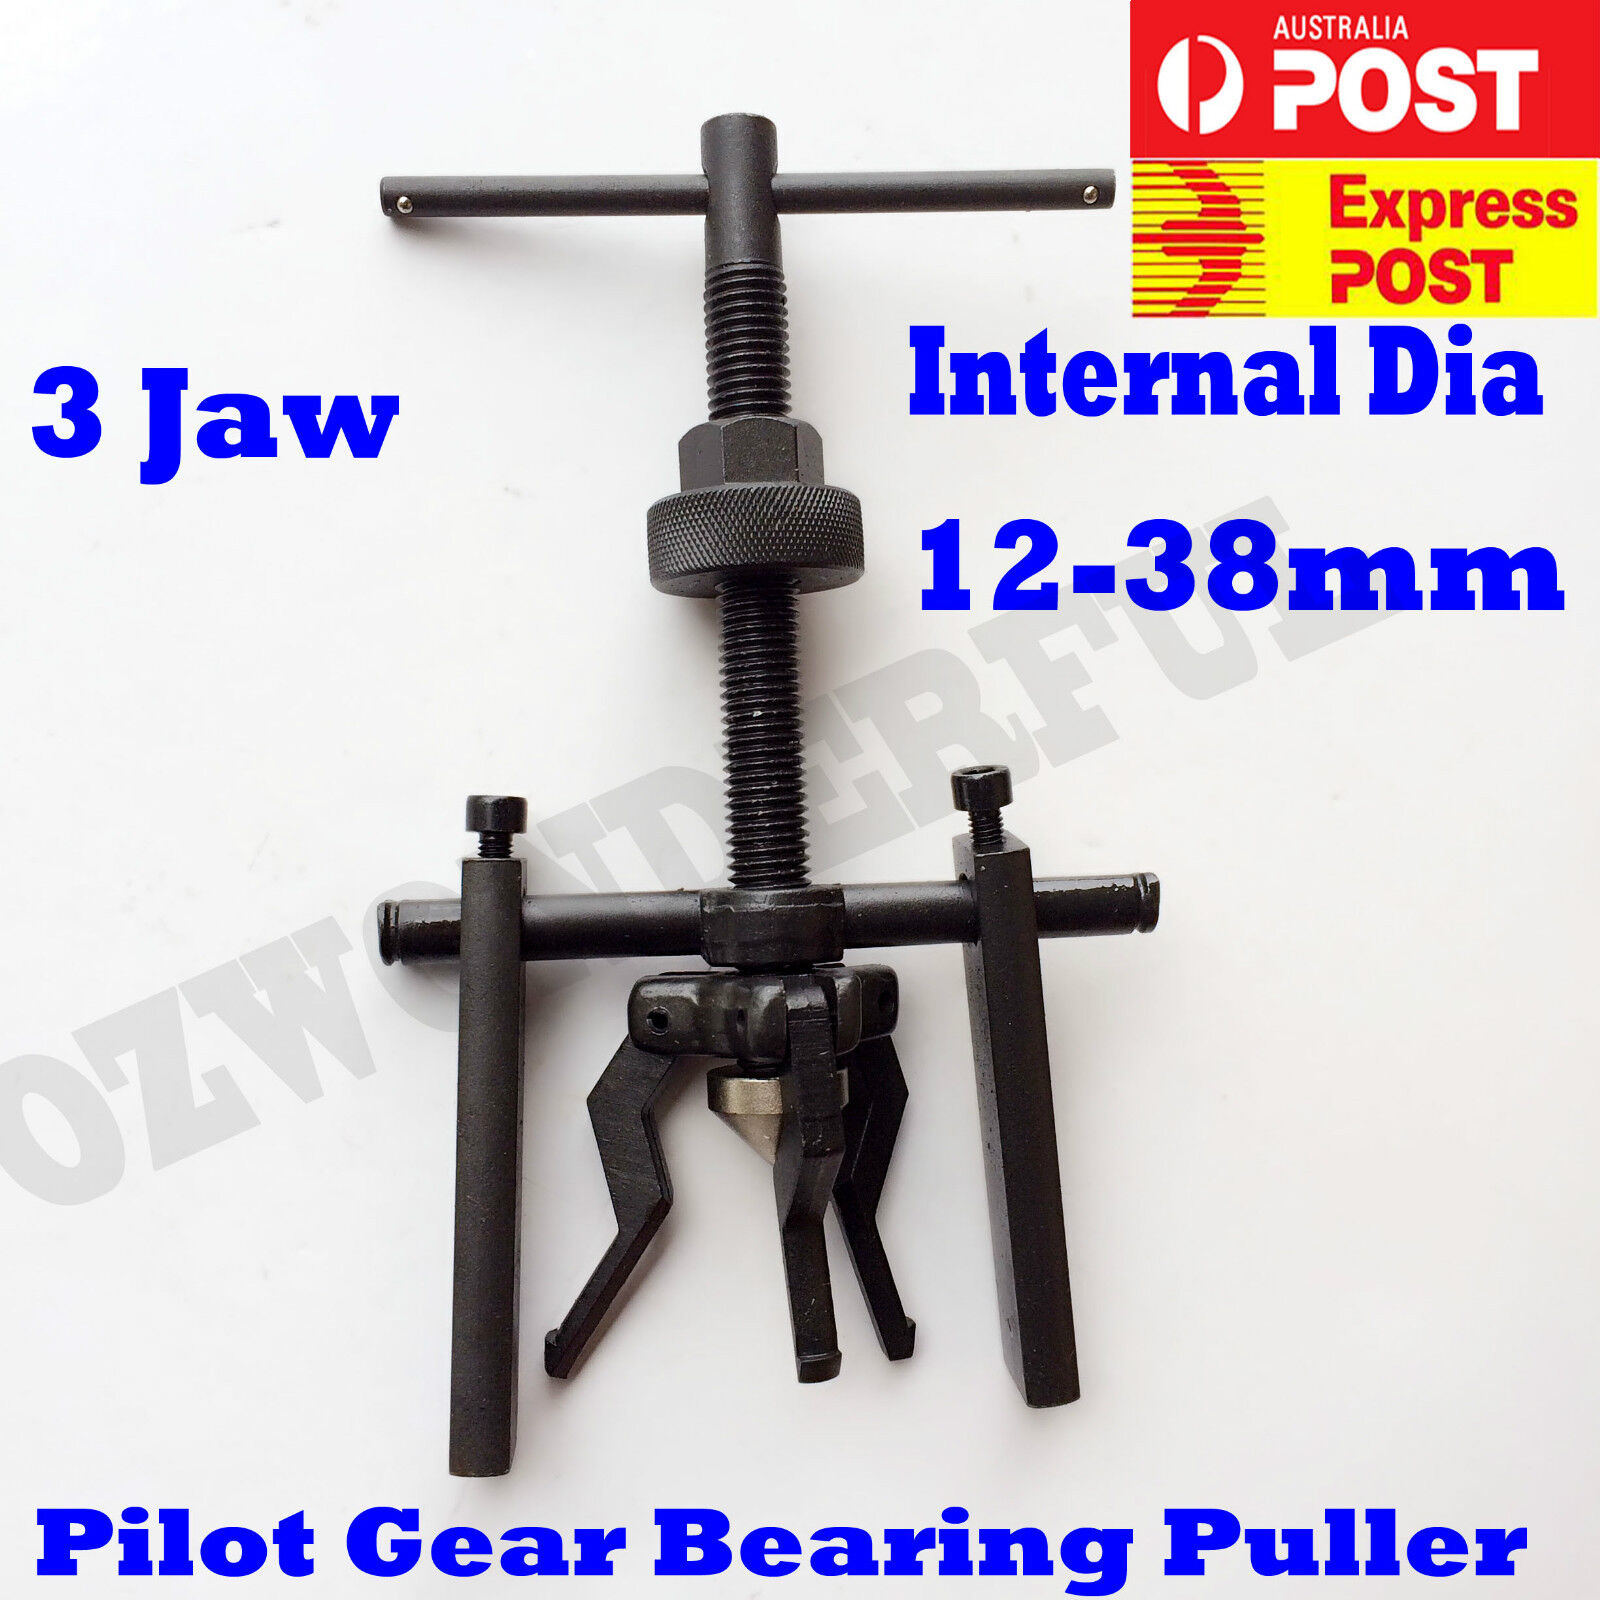 How To Use 2 Jaw Puller : Pilot gear bearing puller jaws heavy duty automotive